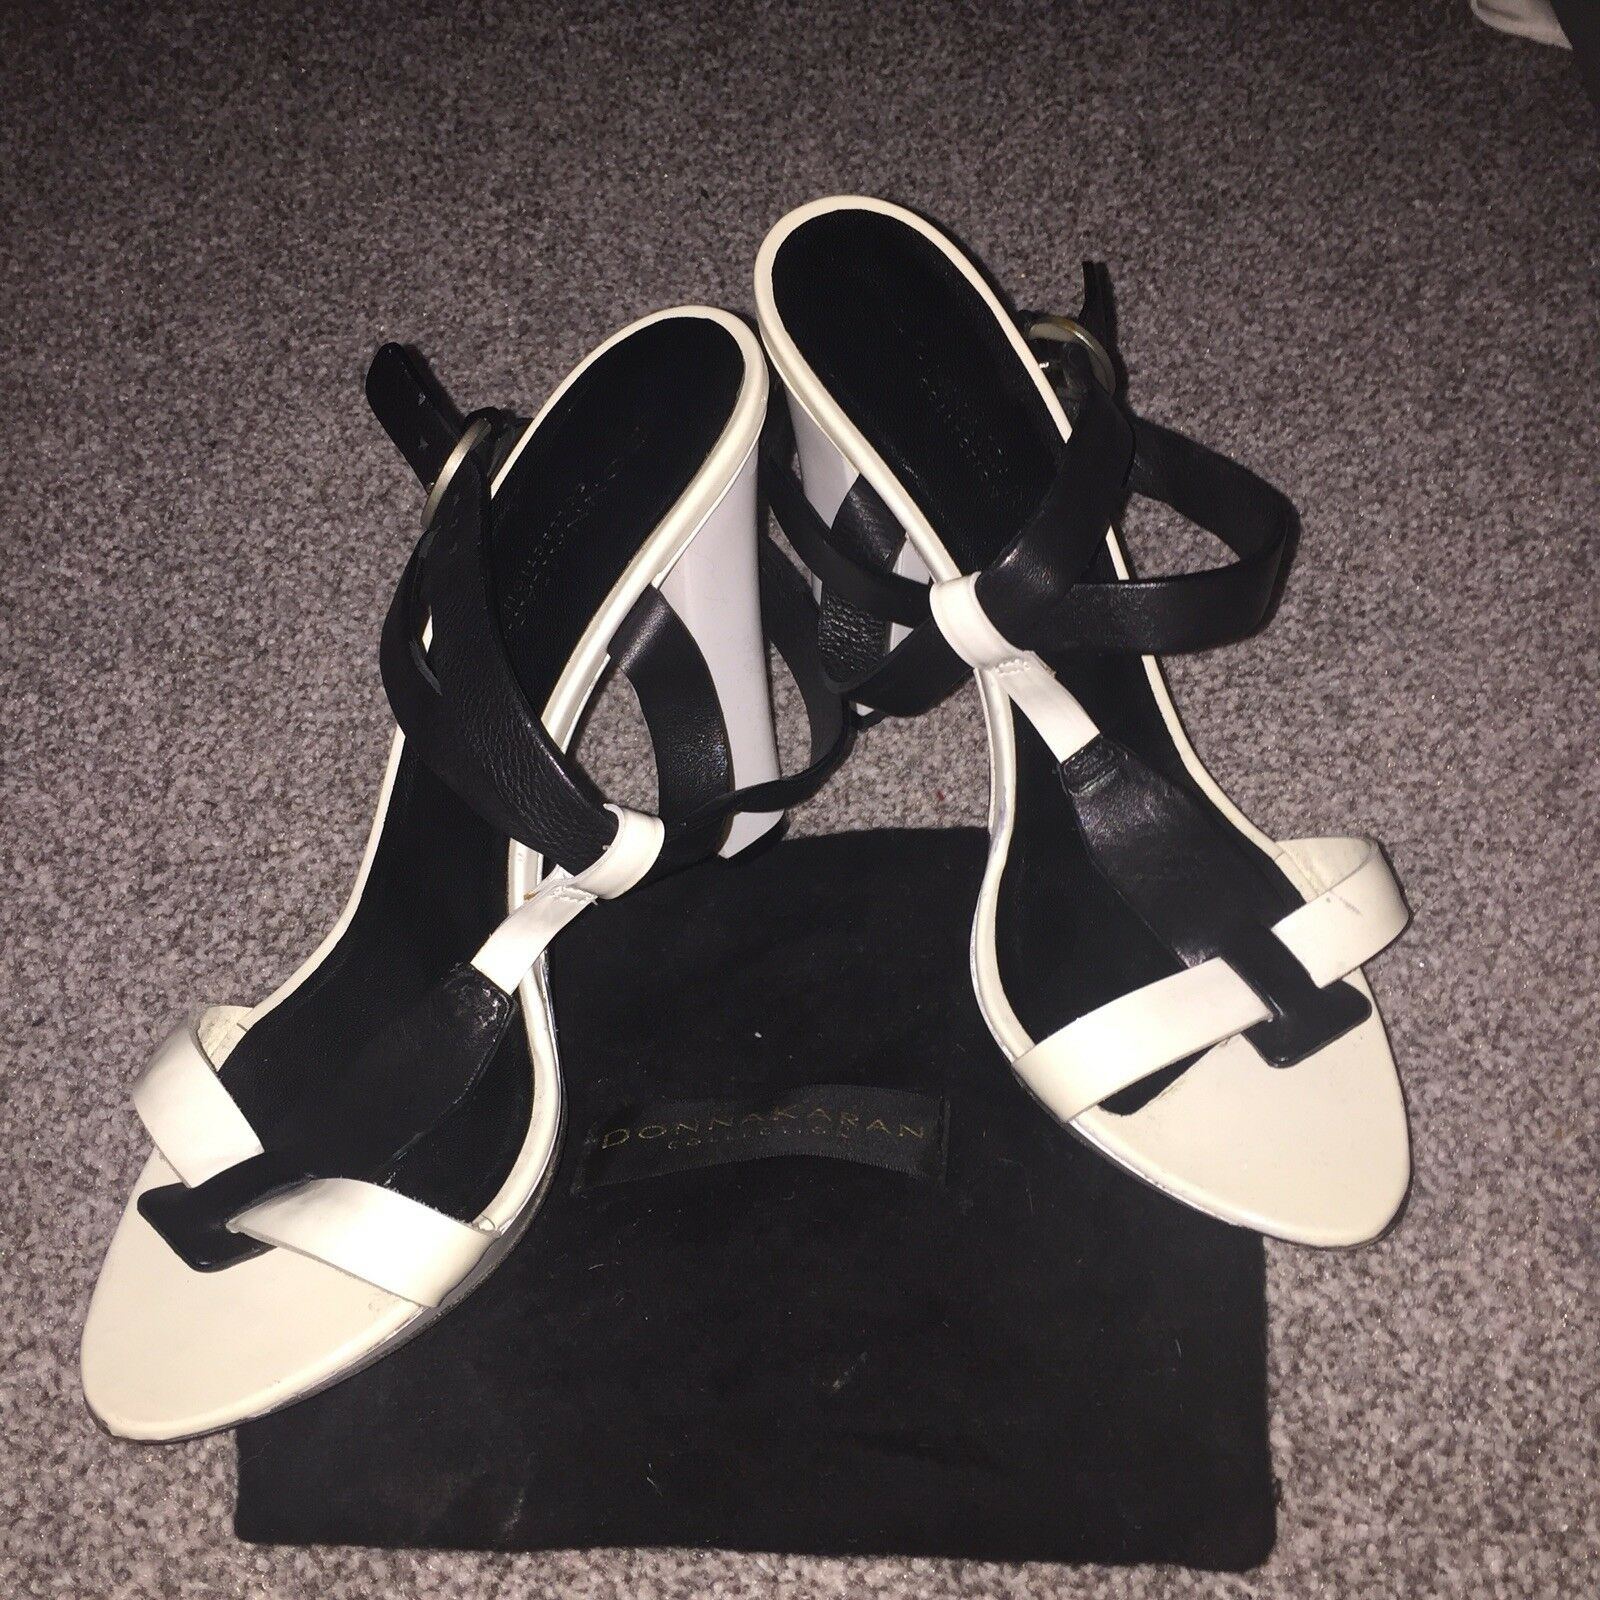 Donna Karan (DKNY) / Heels with dust bag Size 38 / (DKNY) UK 5 9ea75b